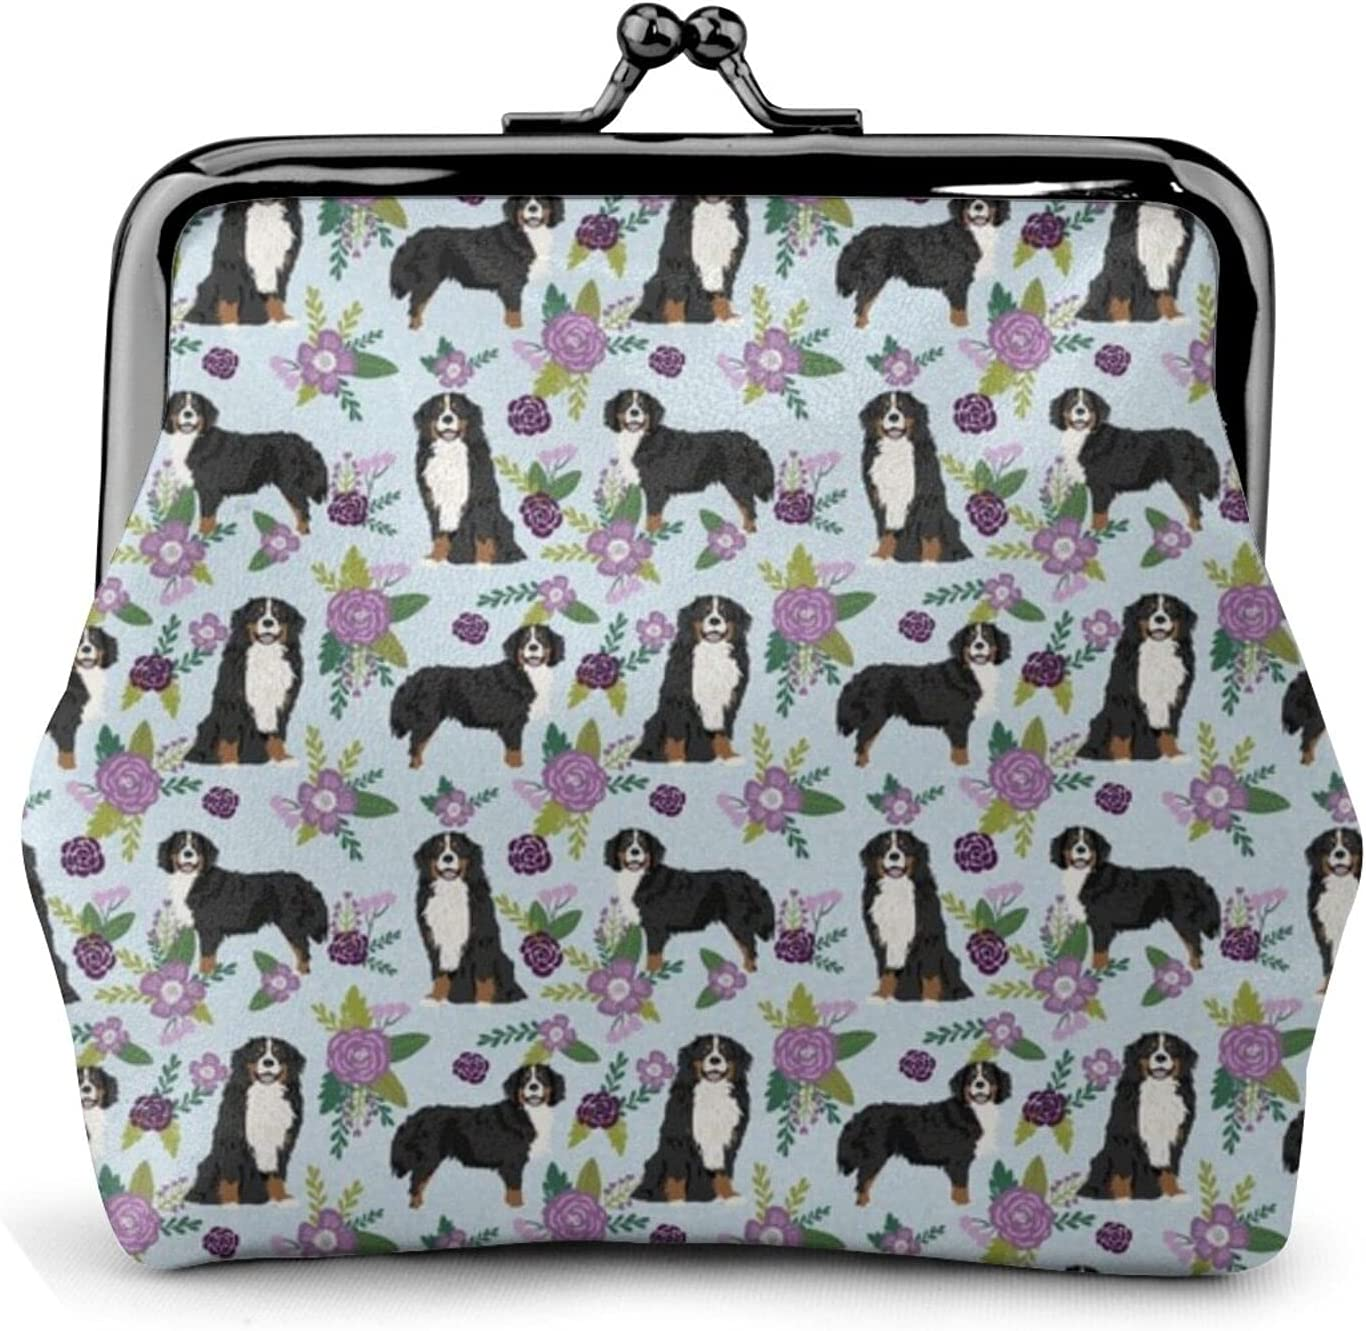 Bernese Mountain Dog 427 Leather Coin Purse Kiss Lock Change Pouch Vintage Clasp Closure Buckle Wallet Small Women Gift